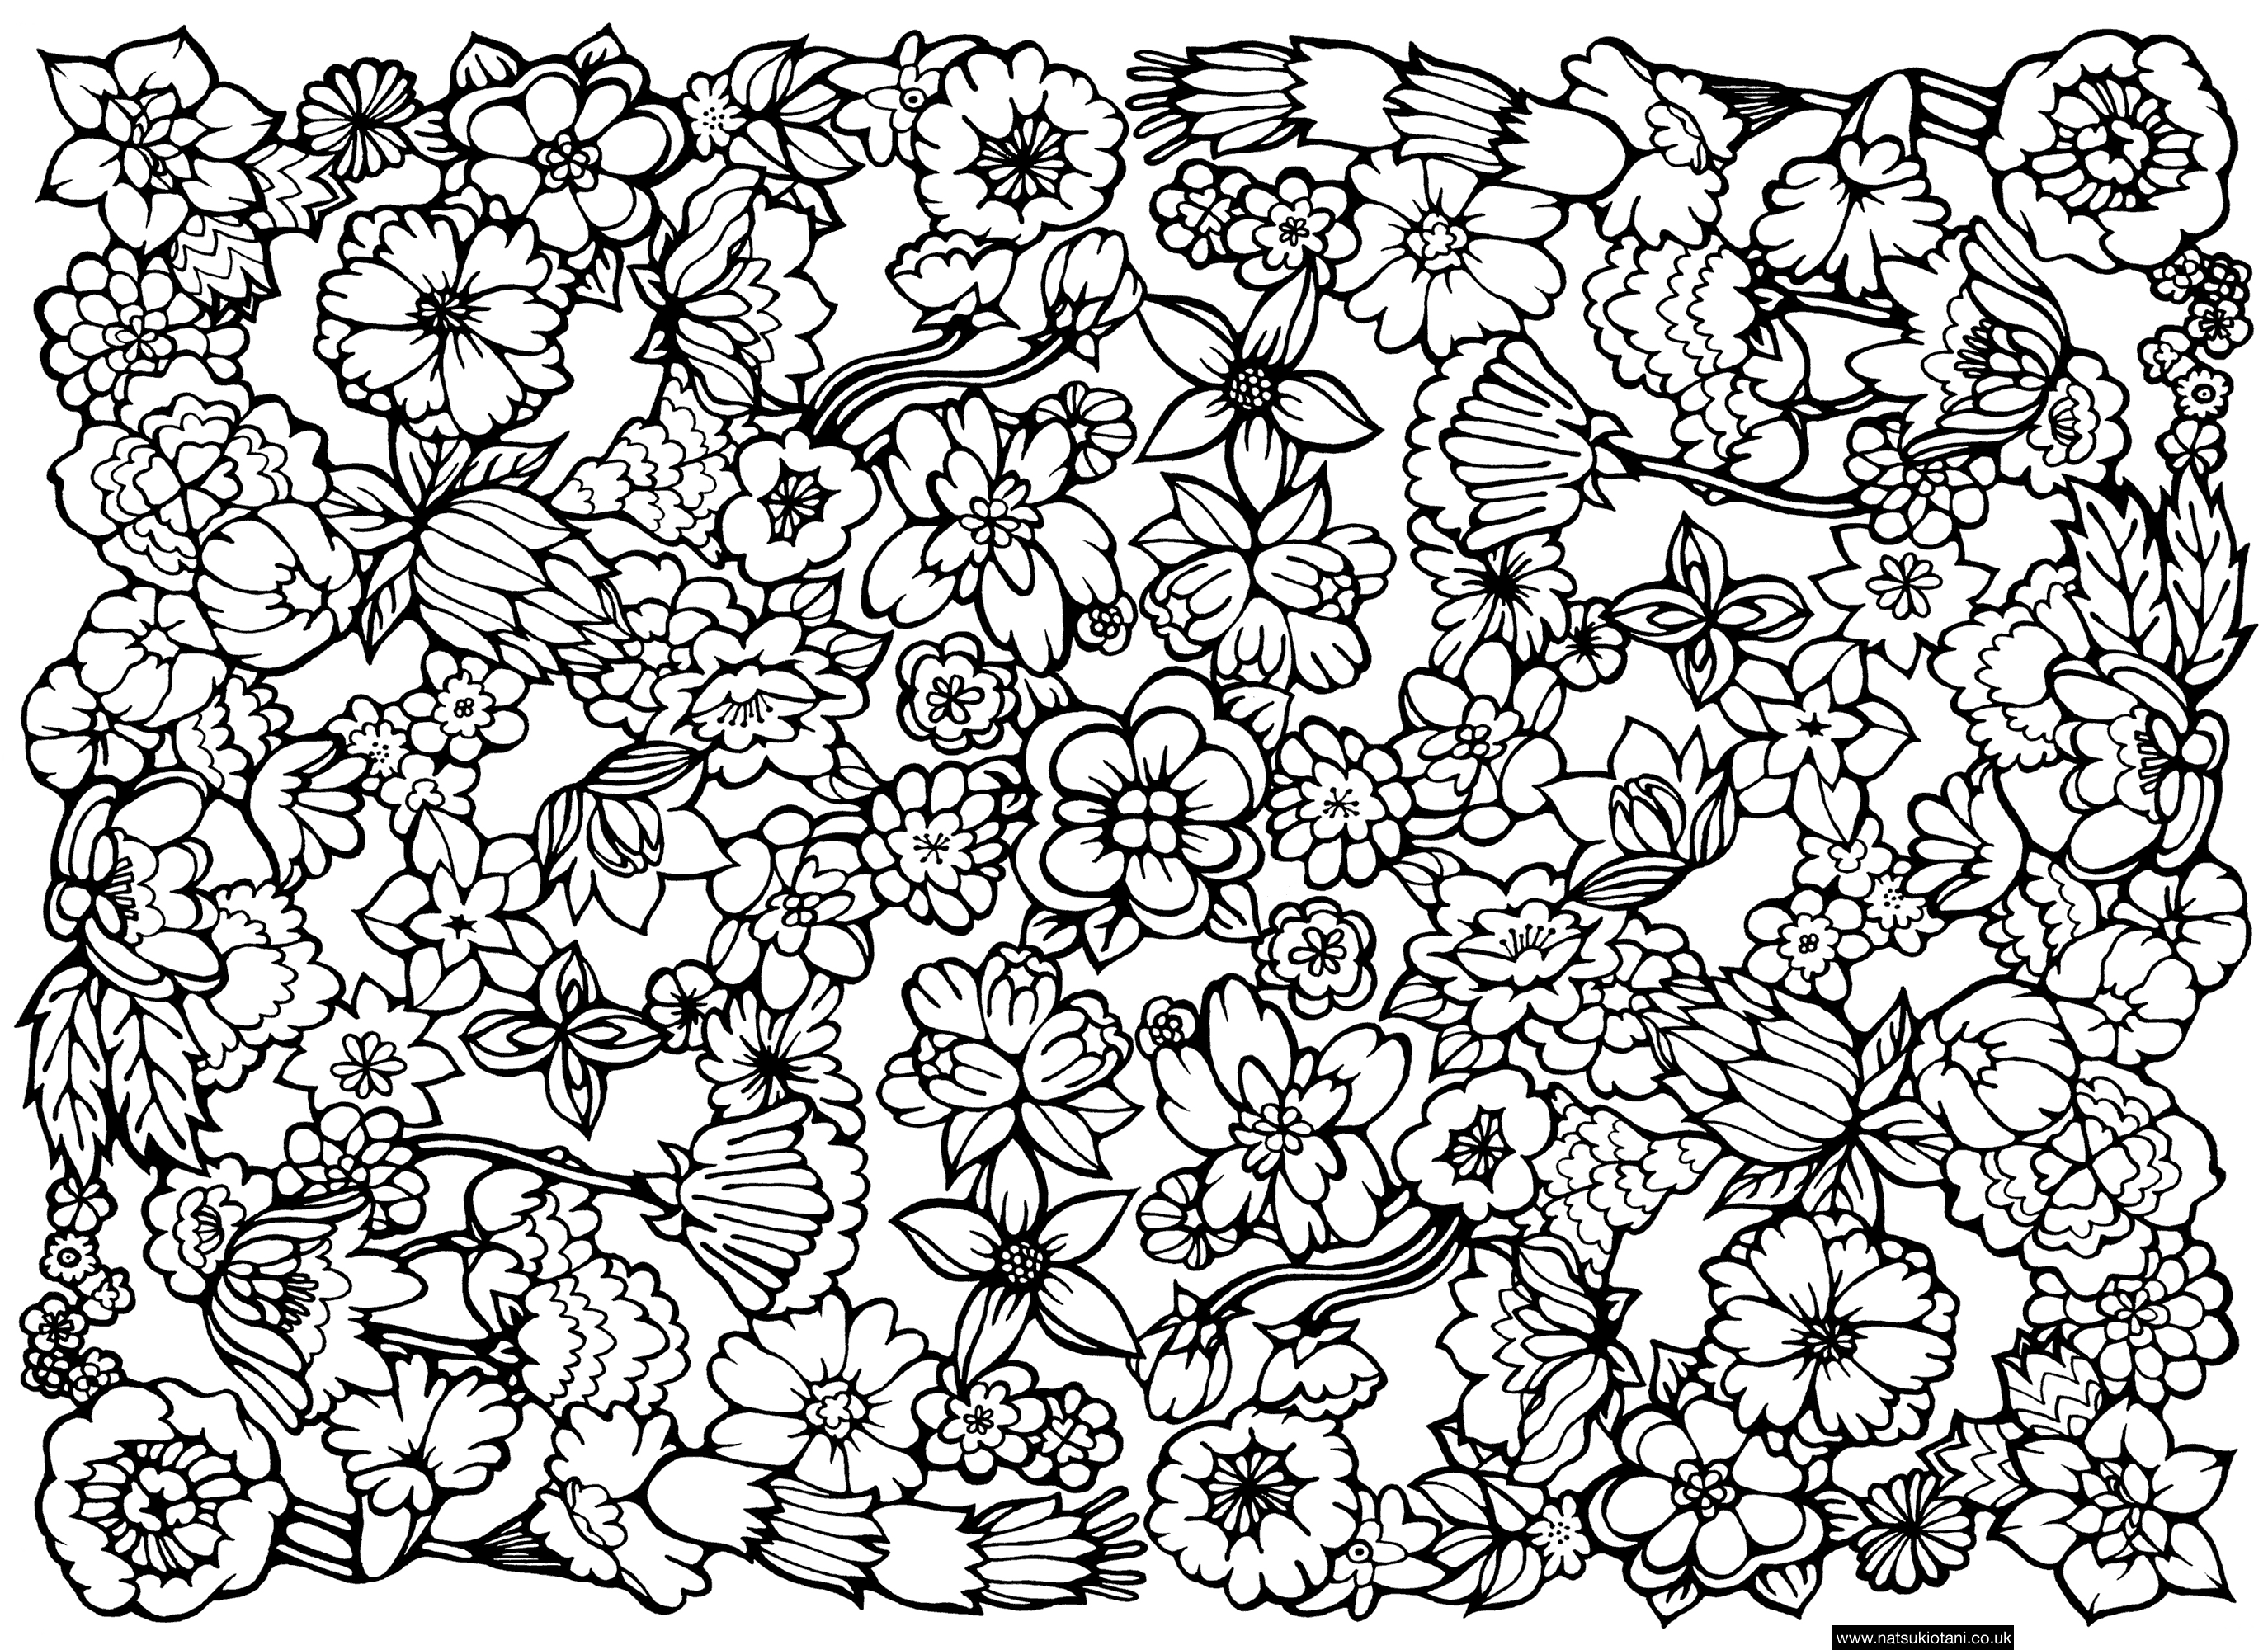 free coloring pages mandalas and more 14443 u2026 pinteres u2026